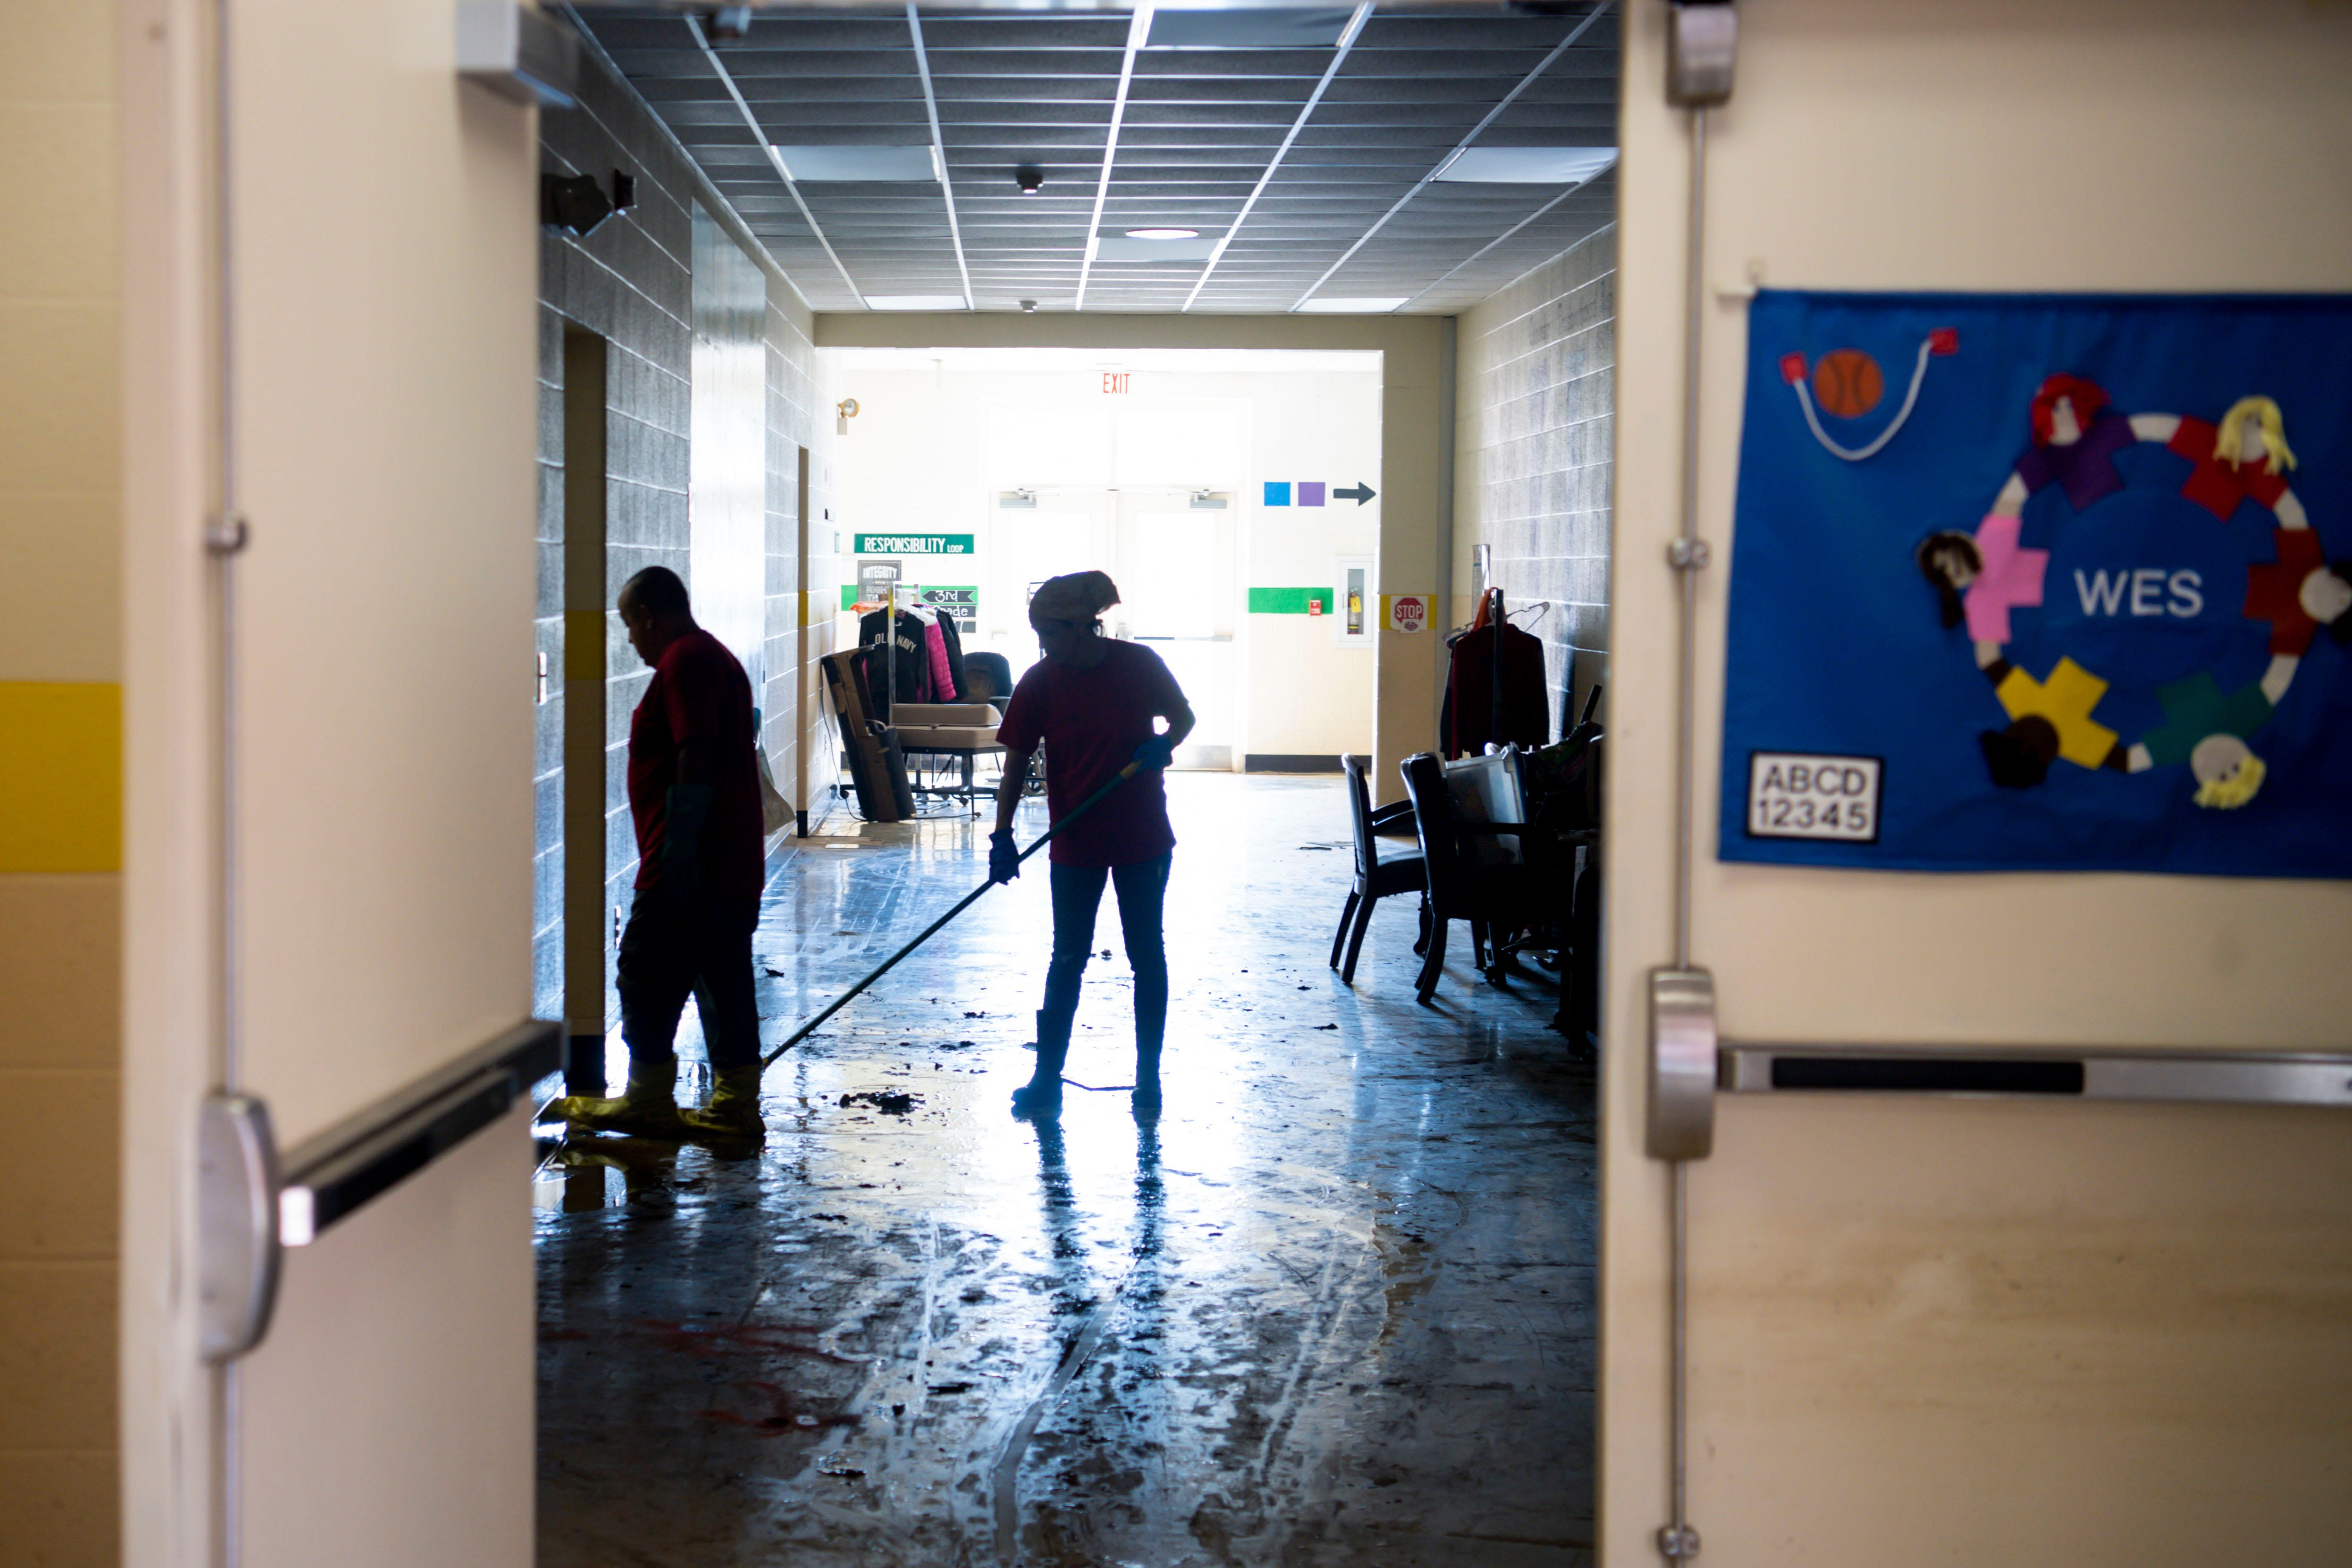 Clean up crew members are silhouetted in Waverly Elementary School Principal as they work on Wednesday, Aug. 25, 2021, after flash flooding swept through the town of Waverly, Tenn.